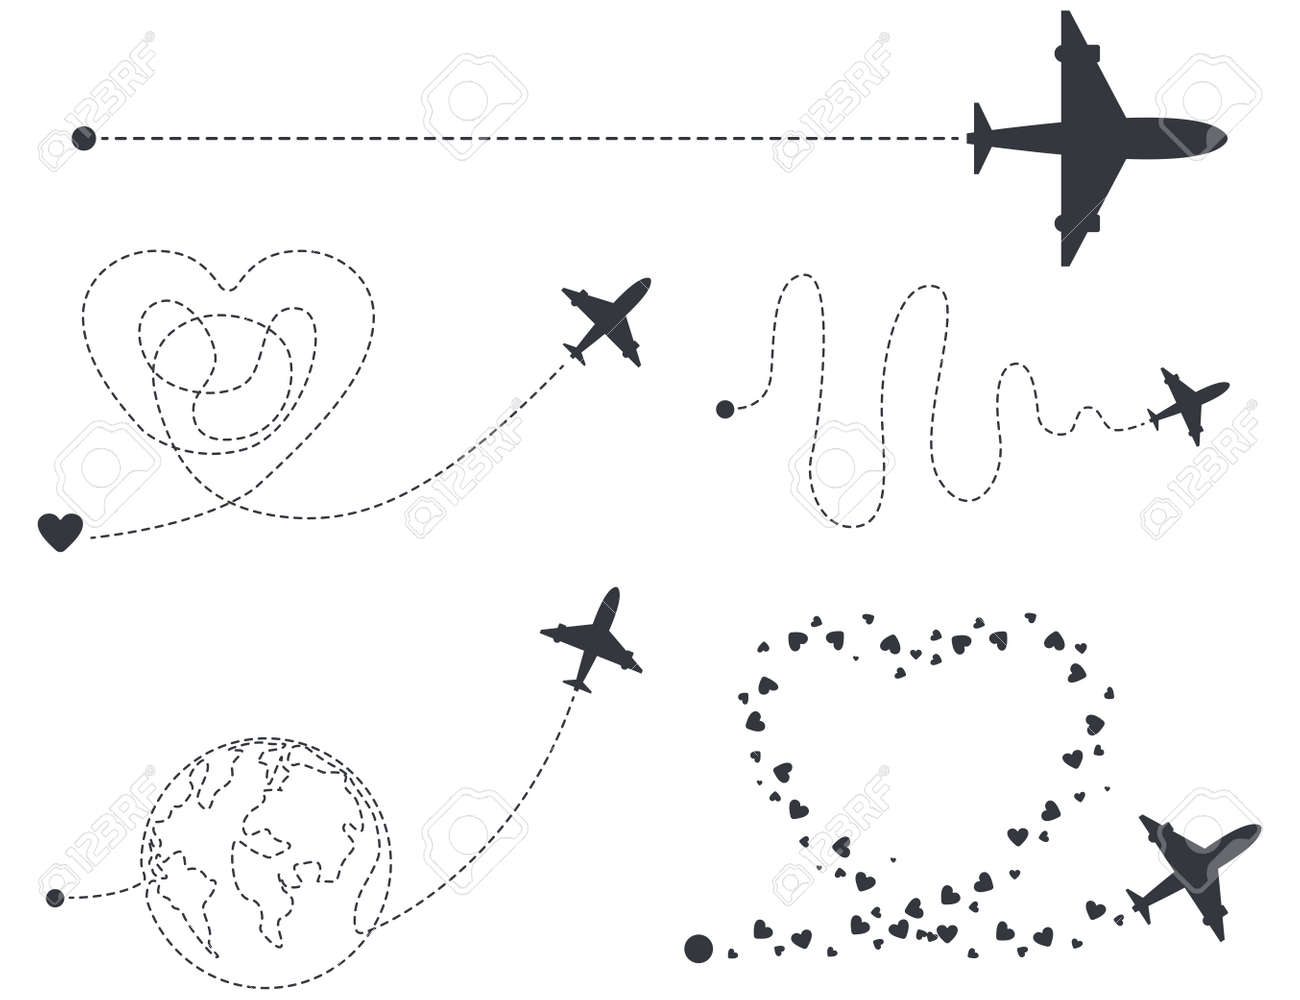 Airplane with start point and different dash line route vector silhouettes set isolated on a white background. - 172749558